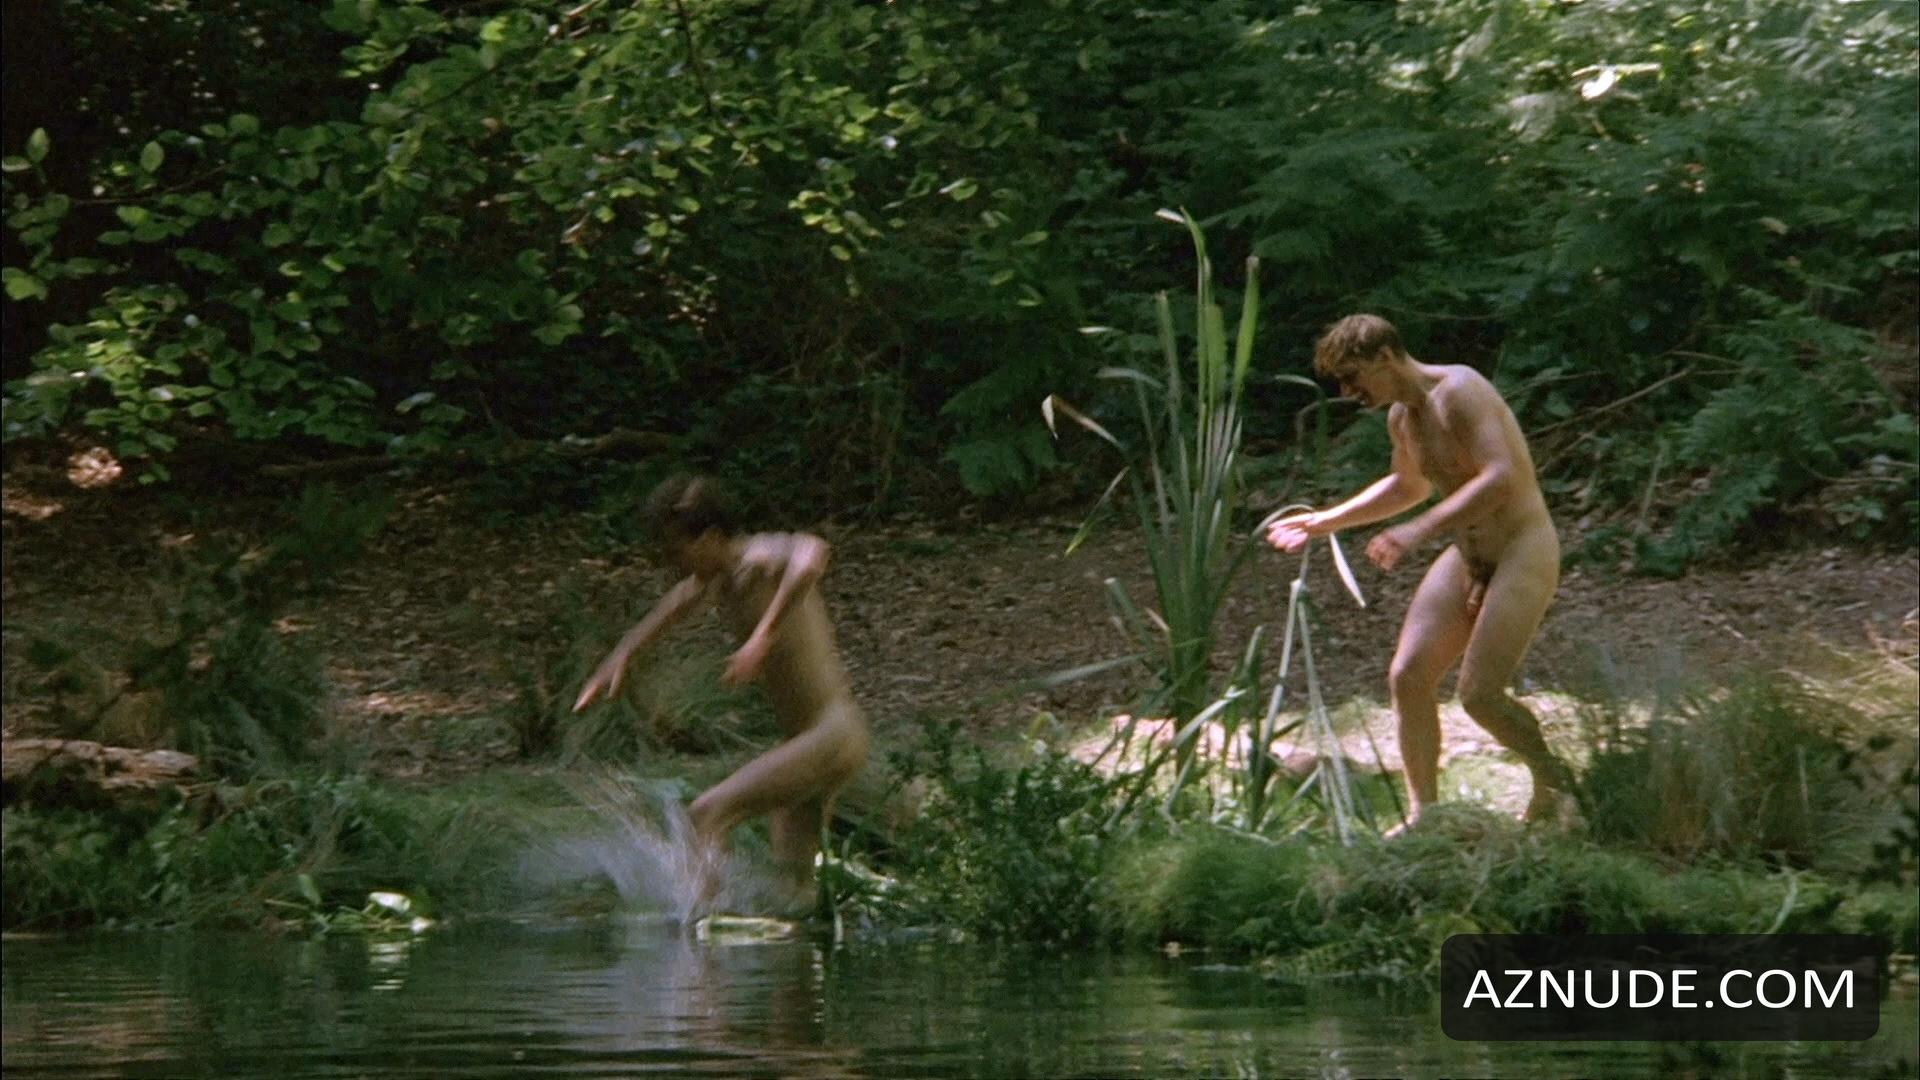 For Julian sands naked pictures the